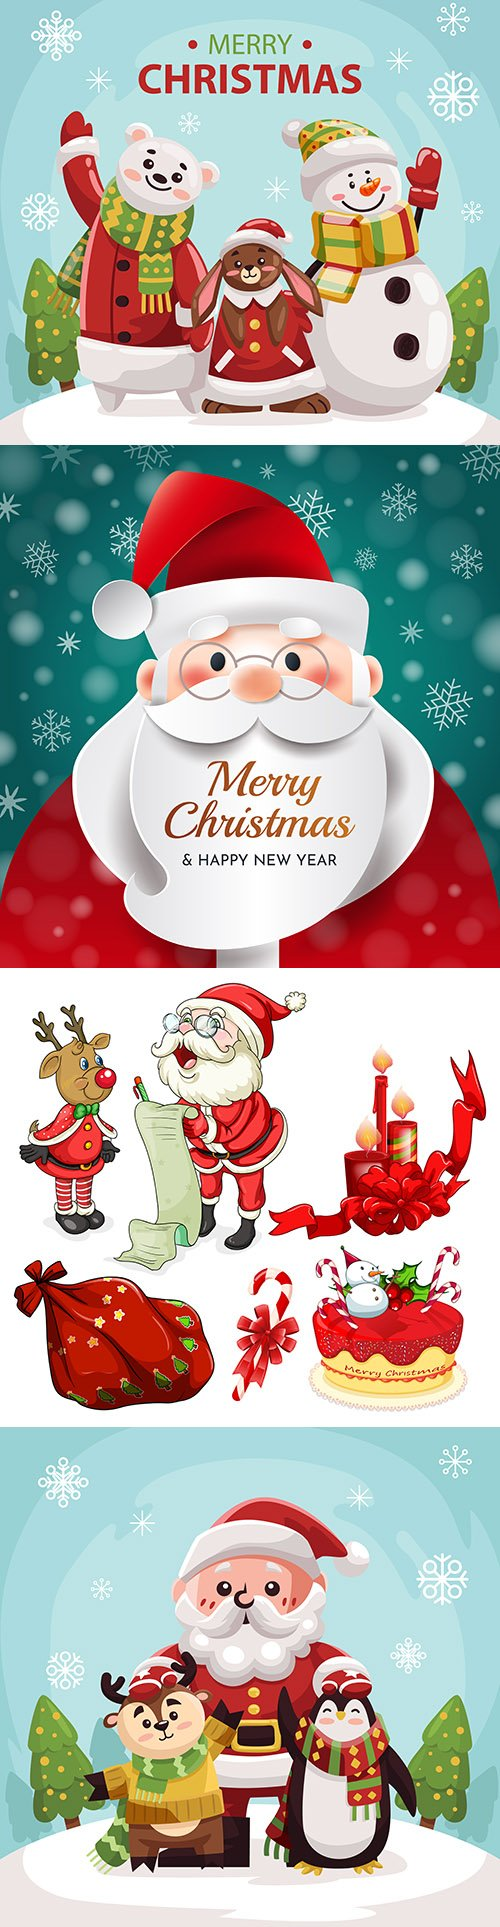 Santa Claus on Christmas background for your greeting card